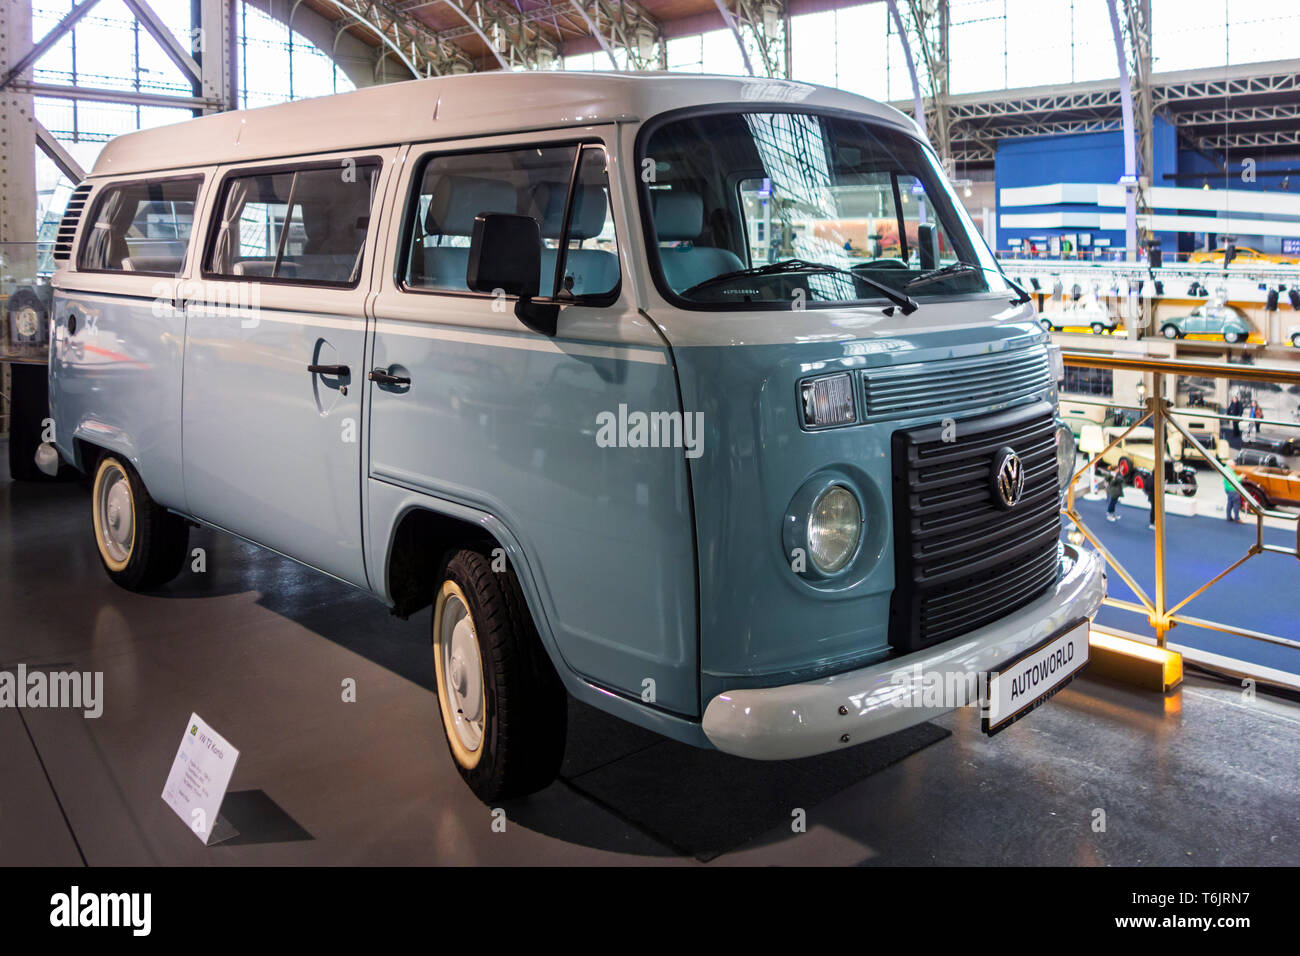 2013 VW T2 Kombi Last Edition, Volkswagen Bus, German classic microbus camper at Autoworld, vintage car museum in Brussels, Belgium - Stock Image